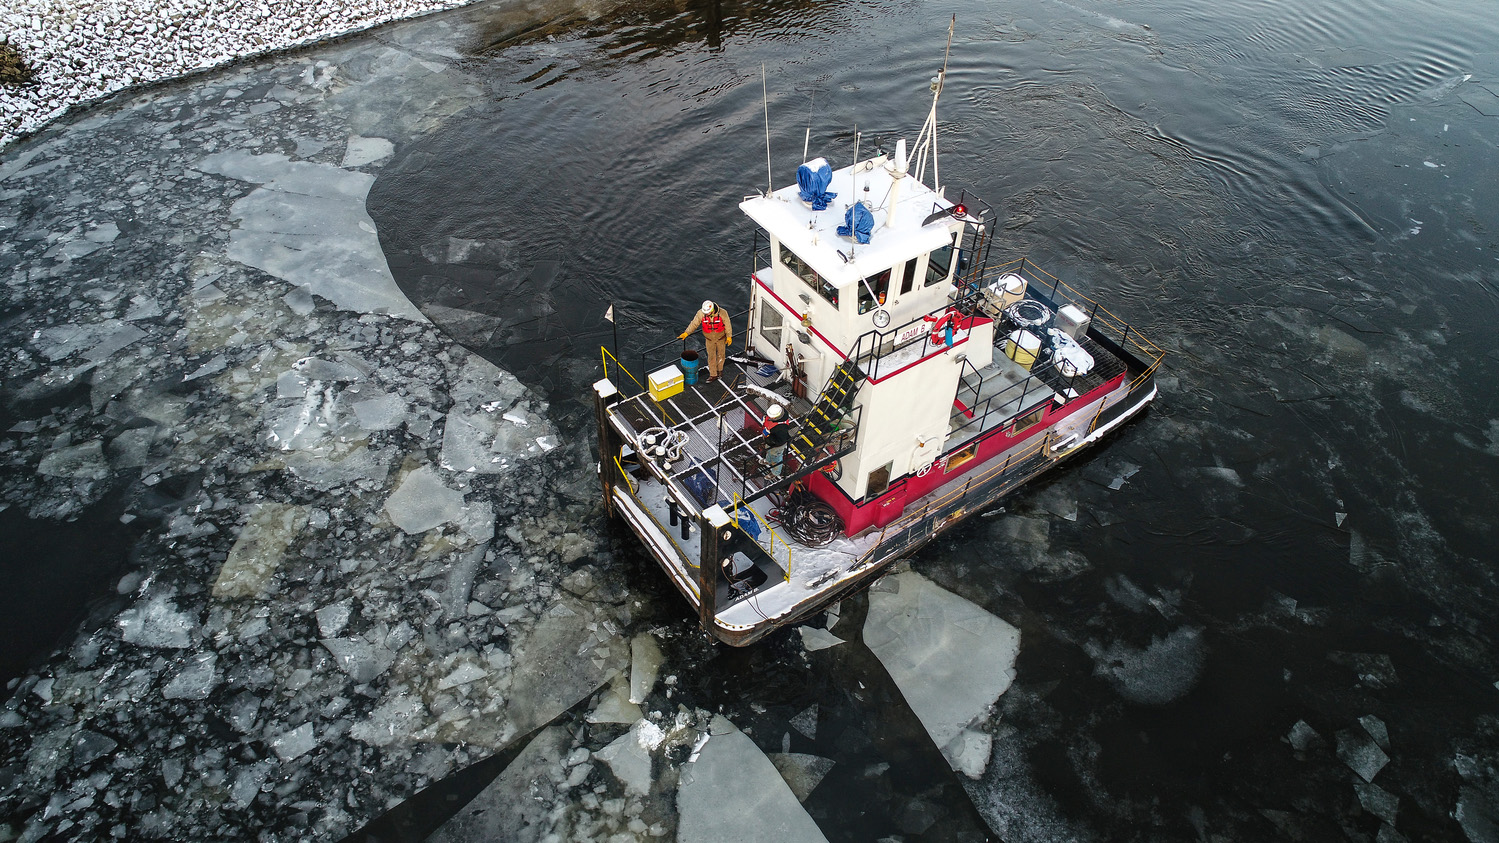 Breaking up ice for boats